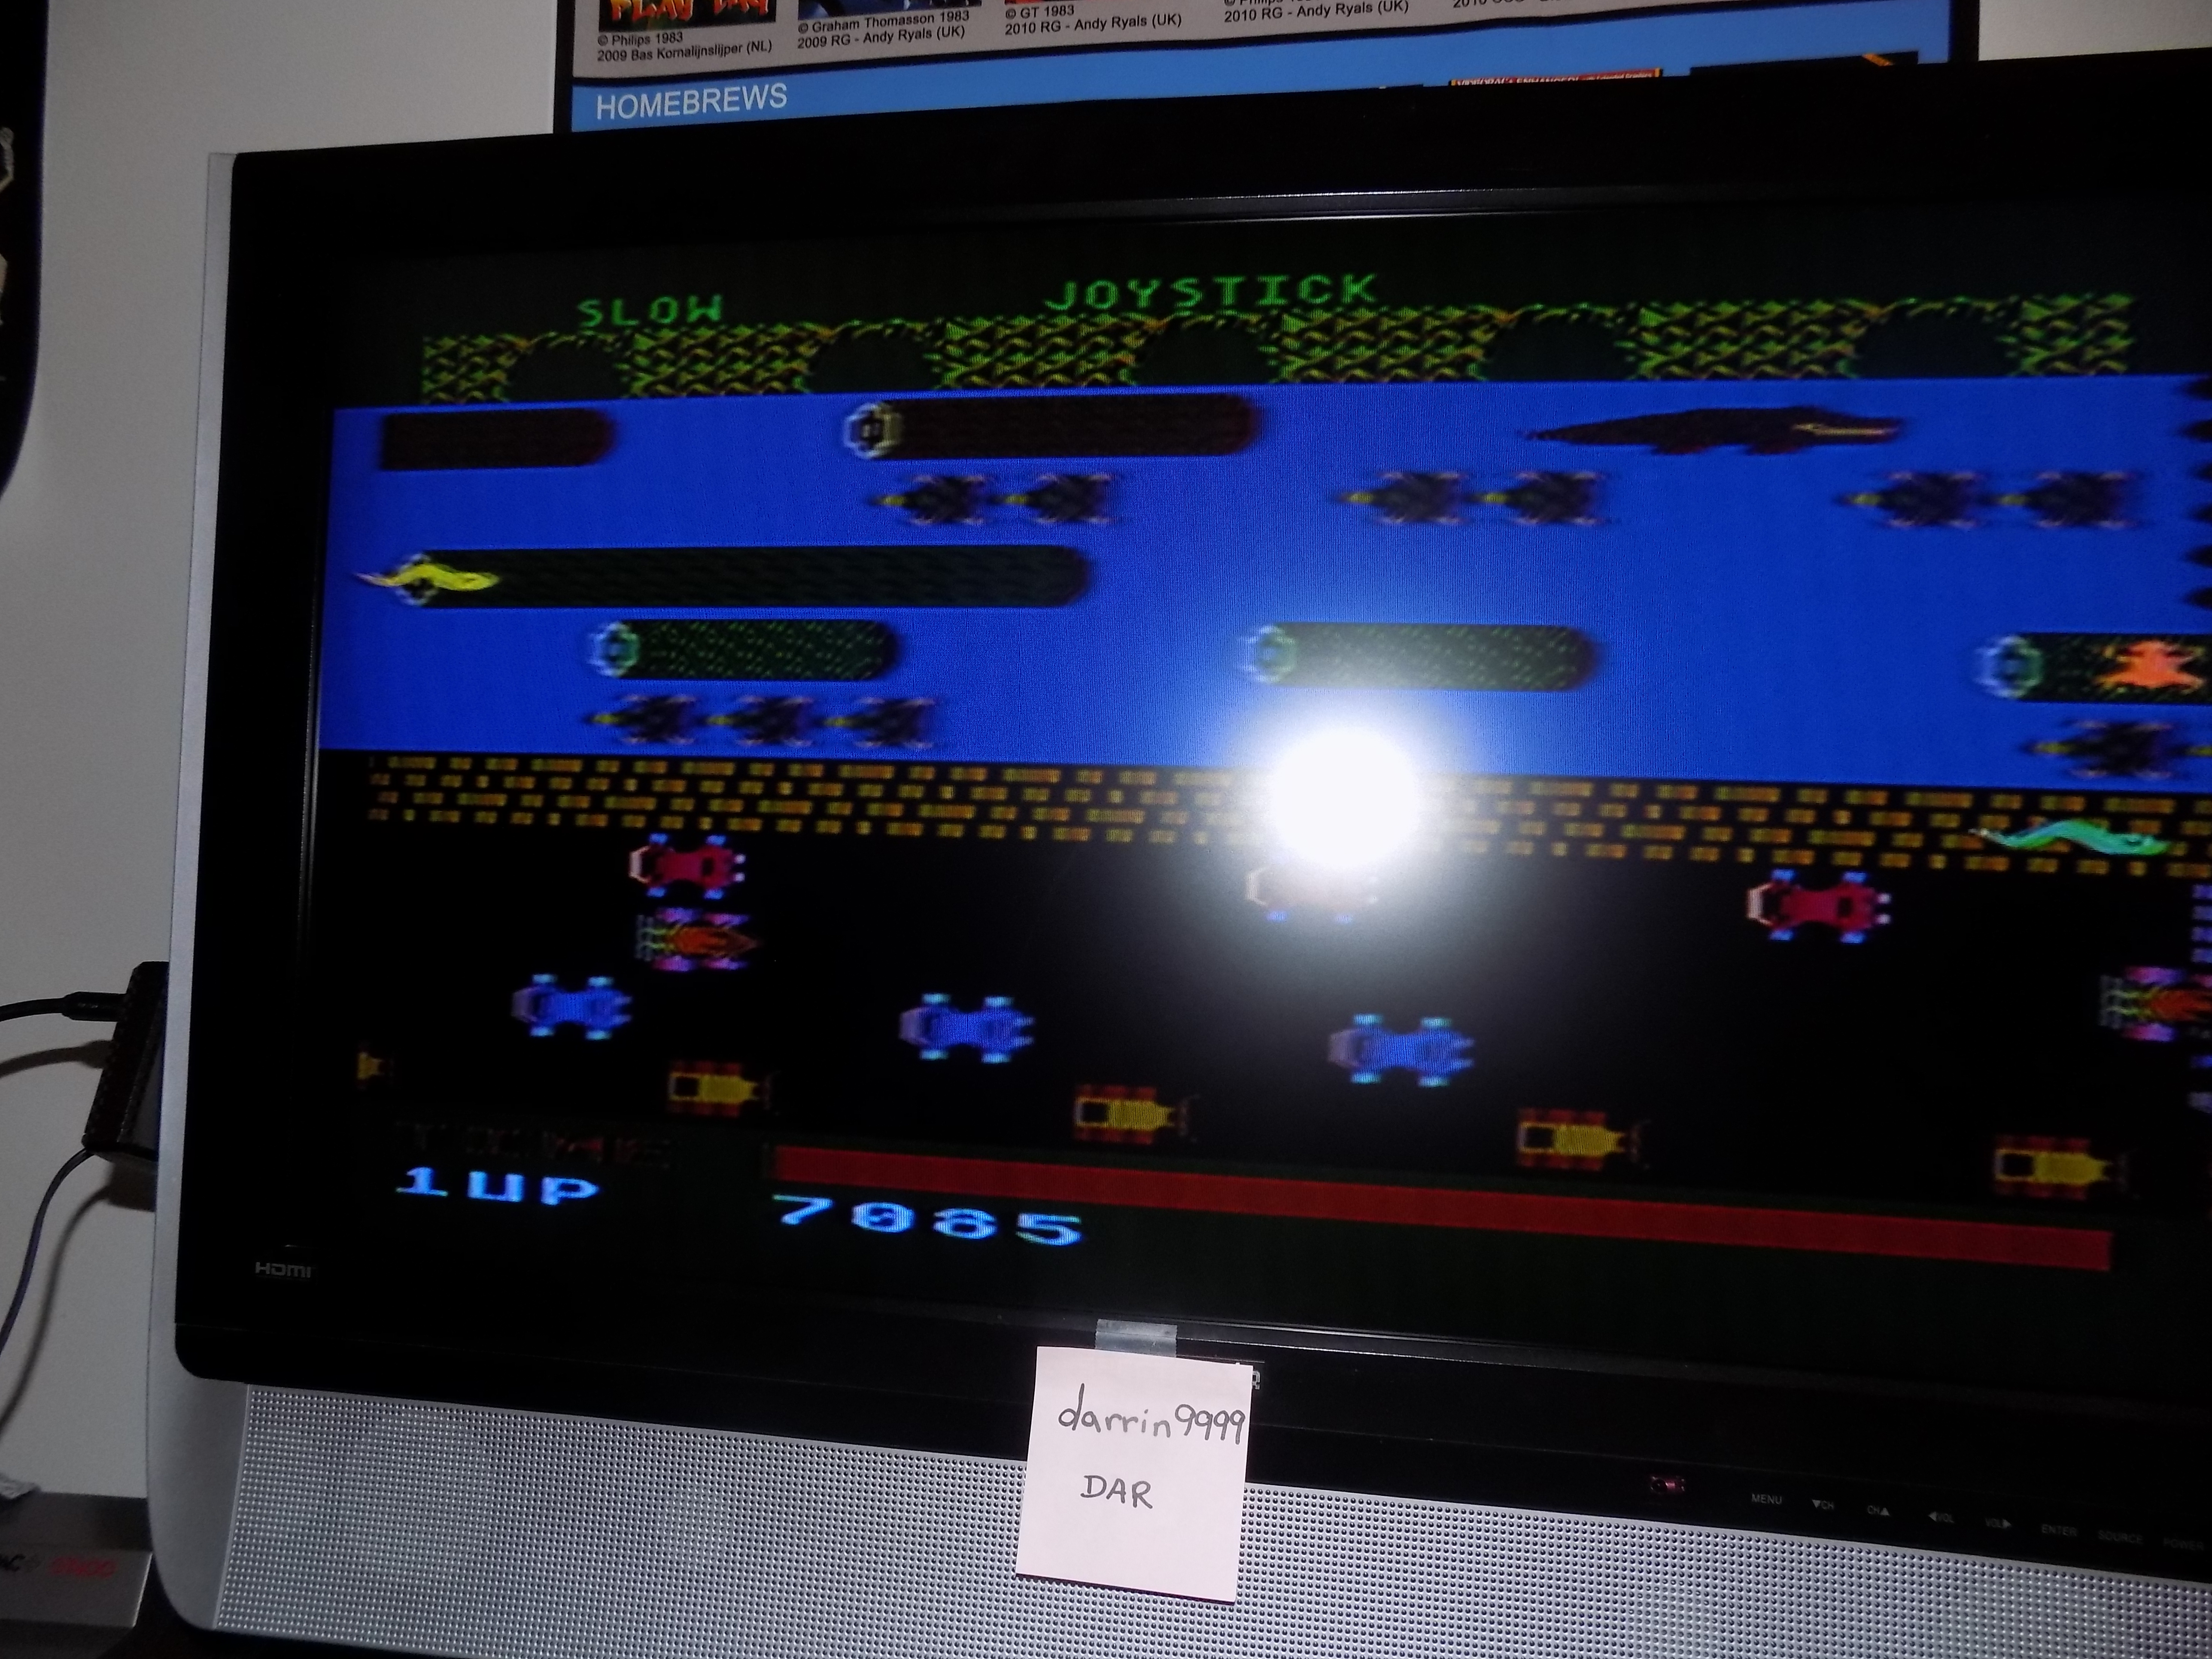 darrin9999: Frogger (Atari 5200) 7,085 points on 2017-02-08 16:36:35